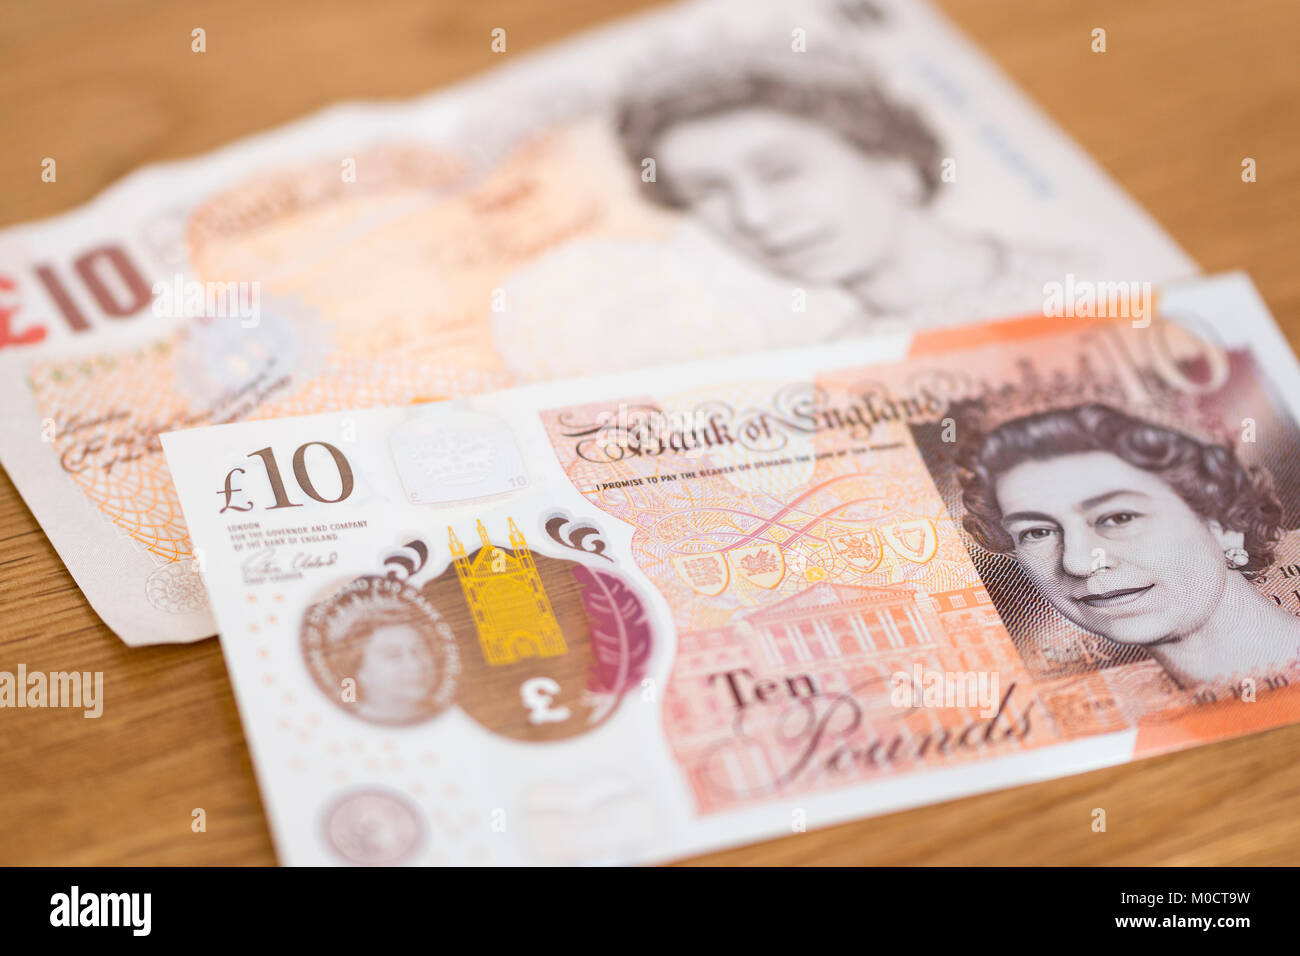 A new polymer £10 note overlaying an old paper £10 note - Stock Image